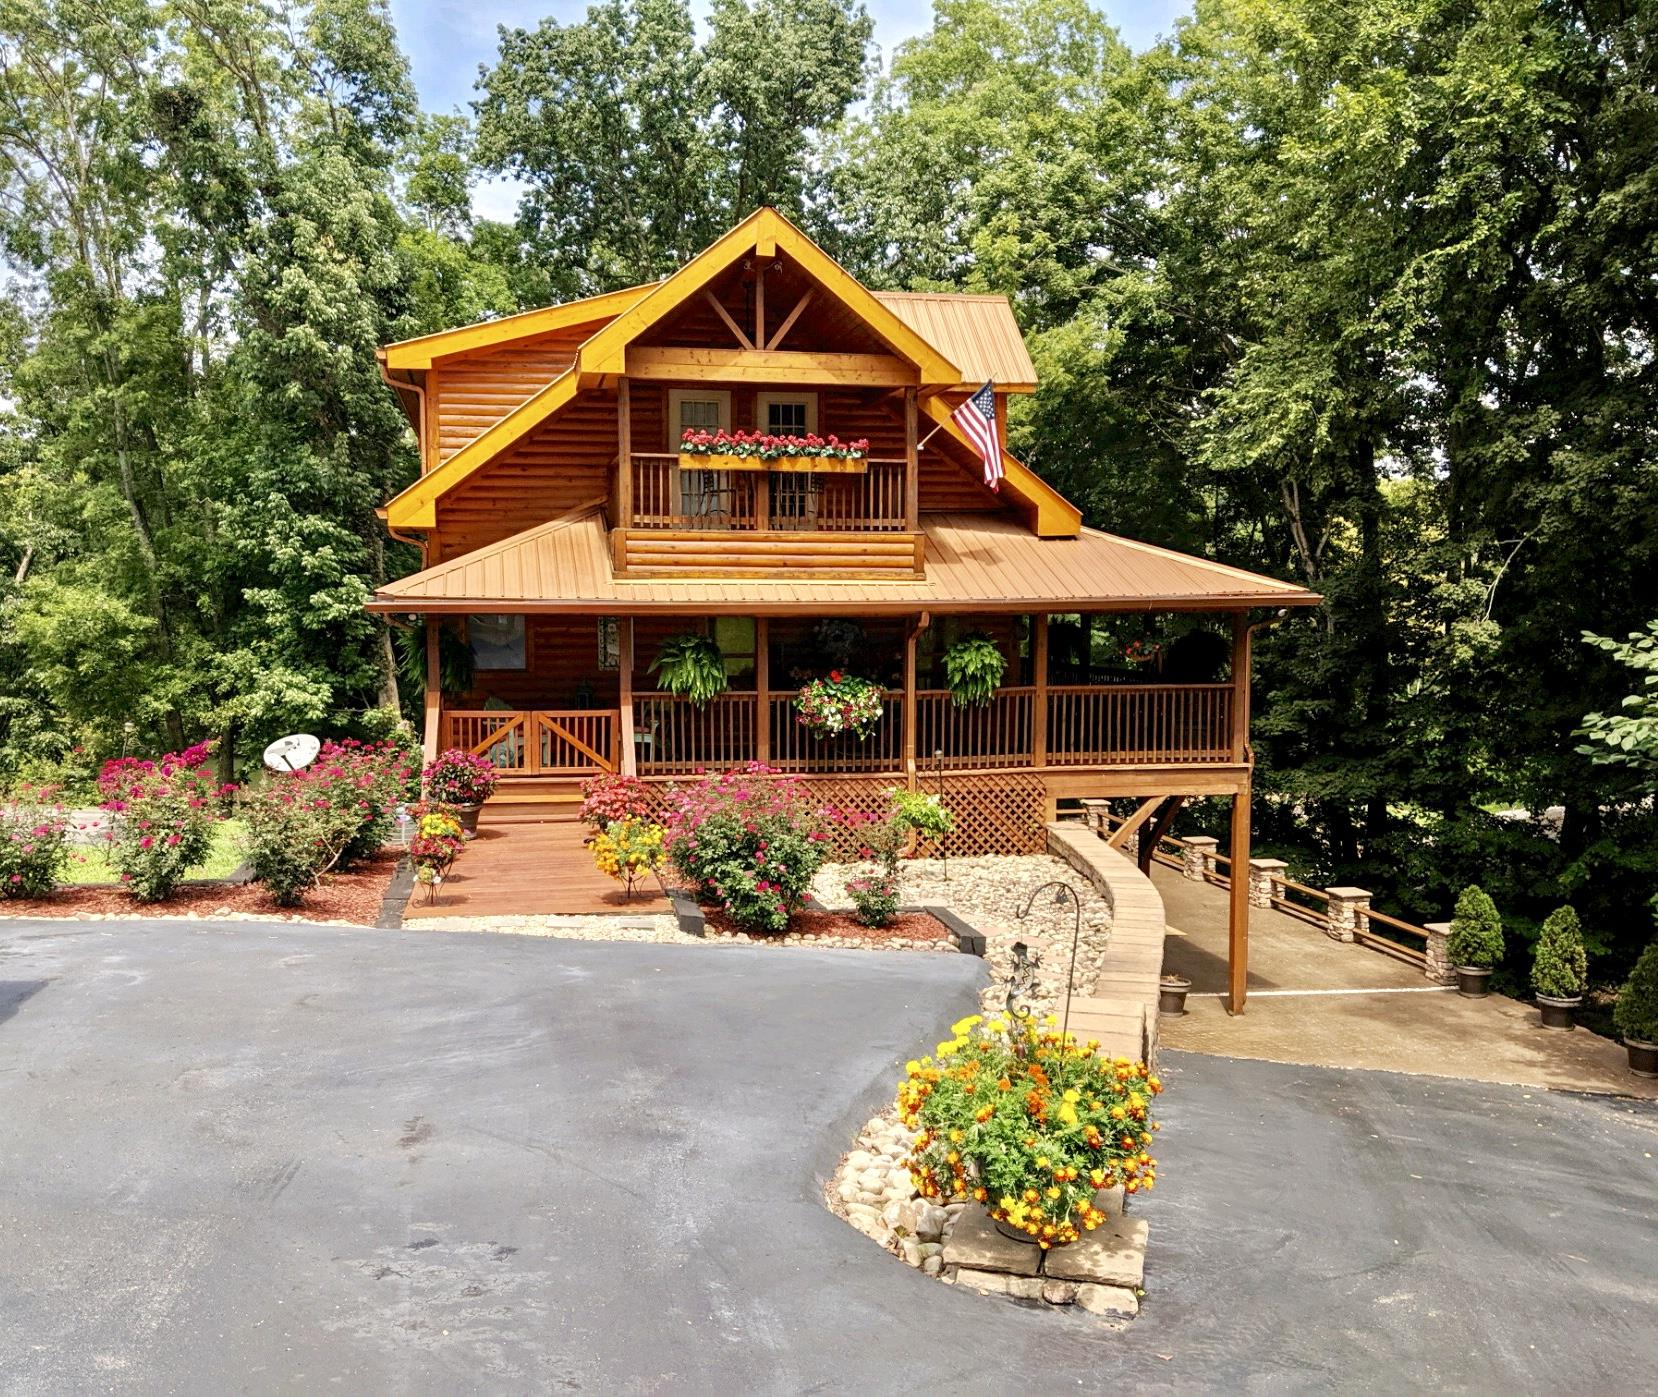 409 River Front Dr, Sparta, TN 38583 - Sparta, TN real estate listing